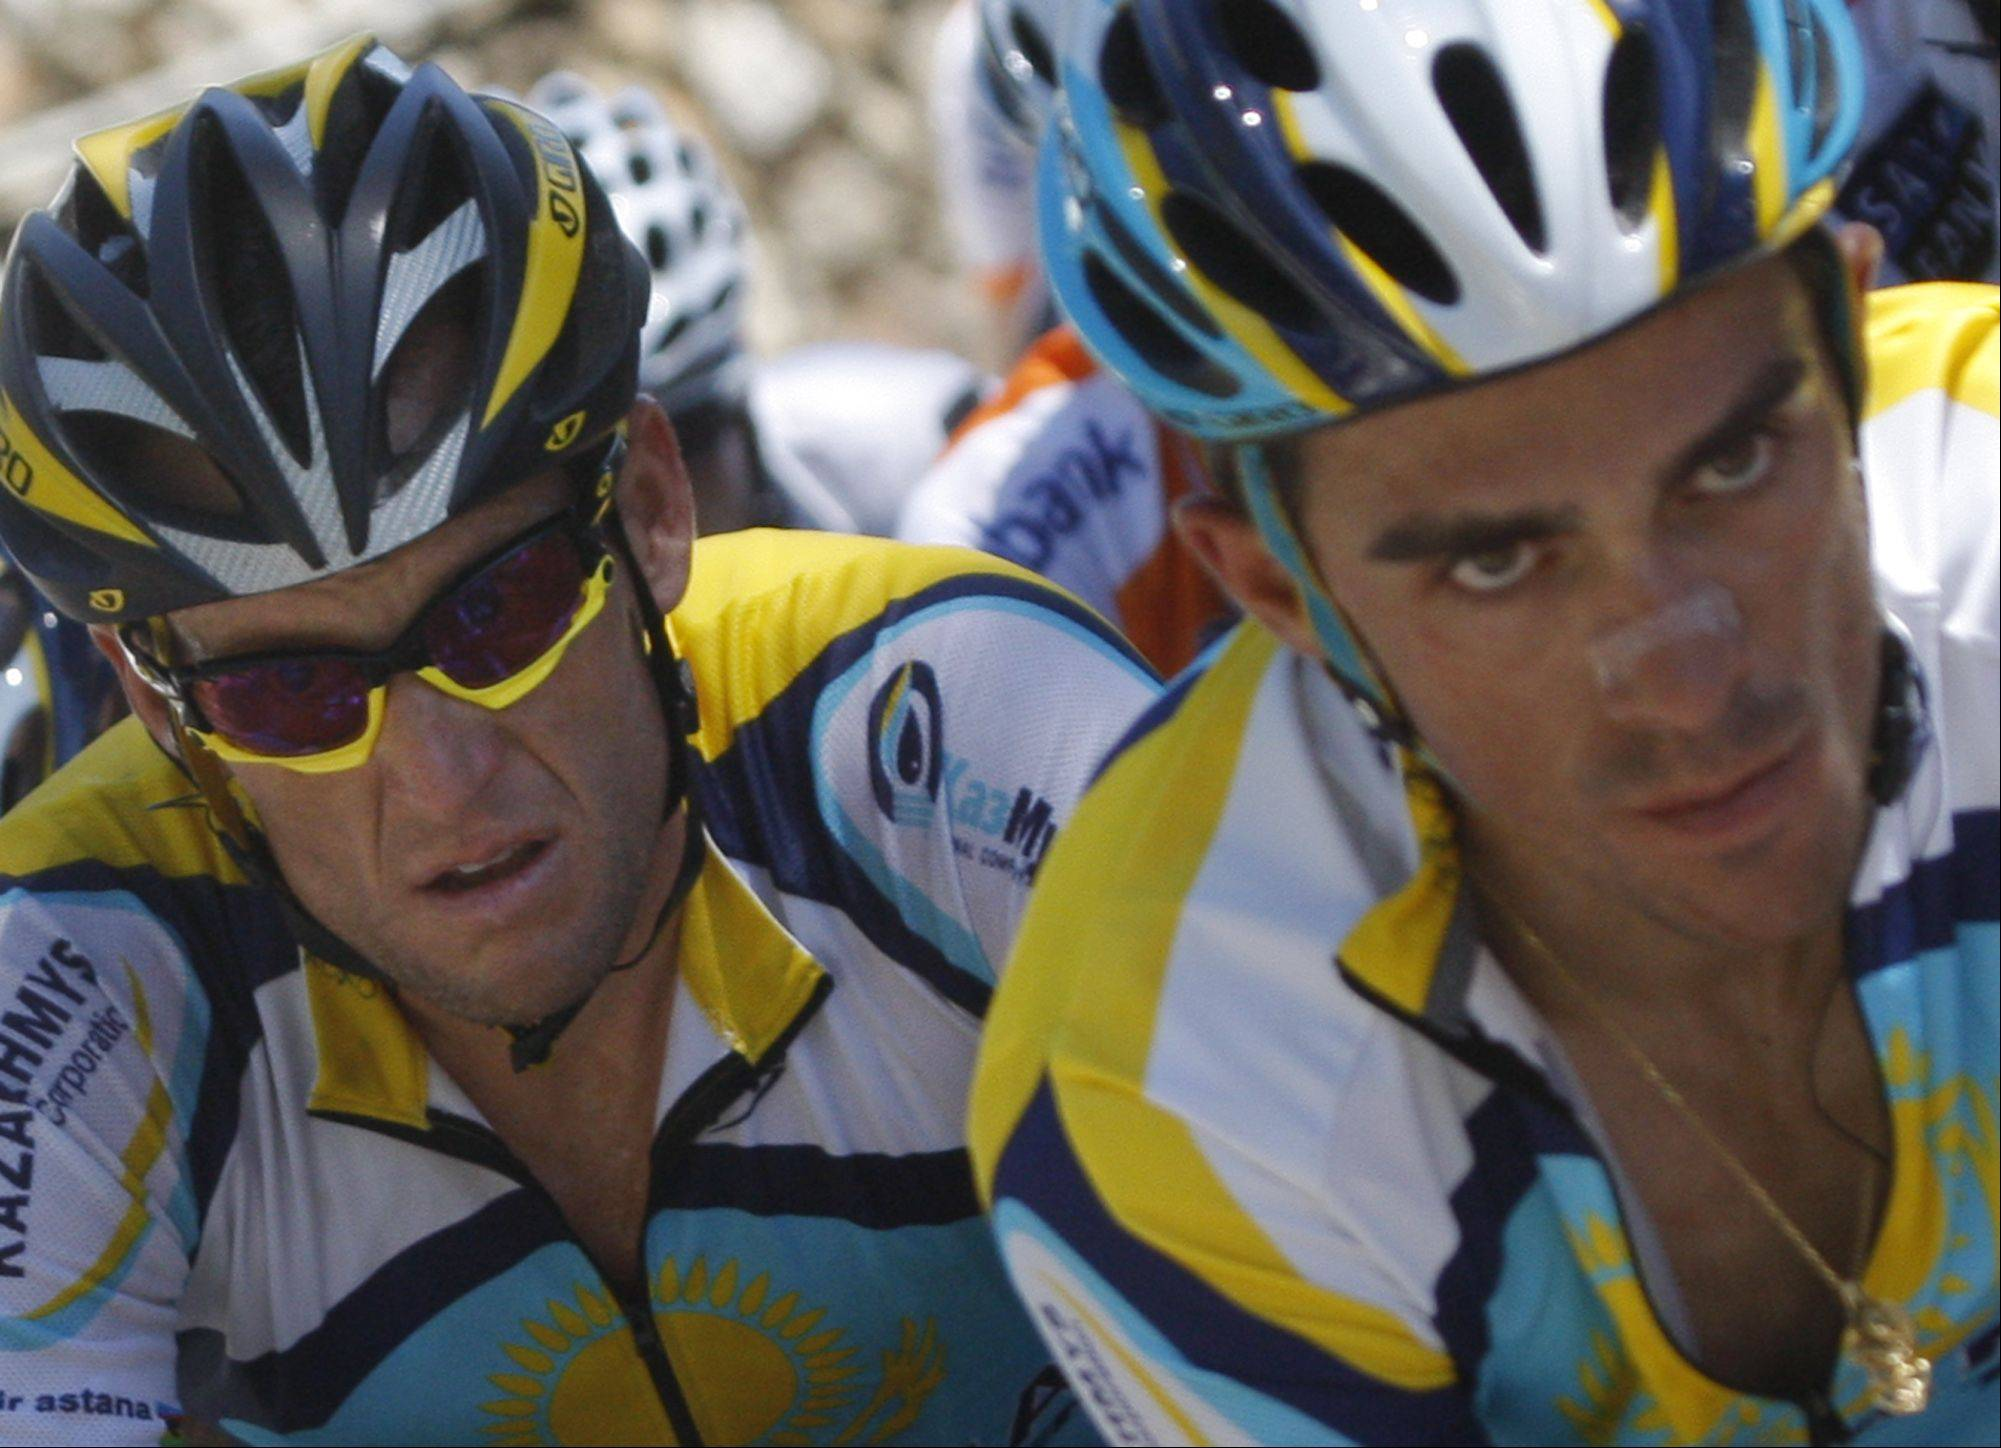 American seven-time Tour de France winner Lance Armstrong, left, and teammate and rival Alberto Contador of Spain, right, climb towards Col de Port , France, during the 8th stage of the Tour de France cycling race over 176.5 kilometers (109.7 miles) with start in Andorra and finish in Saint-Girons, France, Saturday July 11, 2009. There never was any love lost between the two teammates.